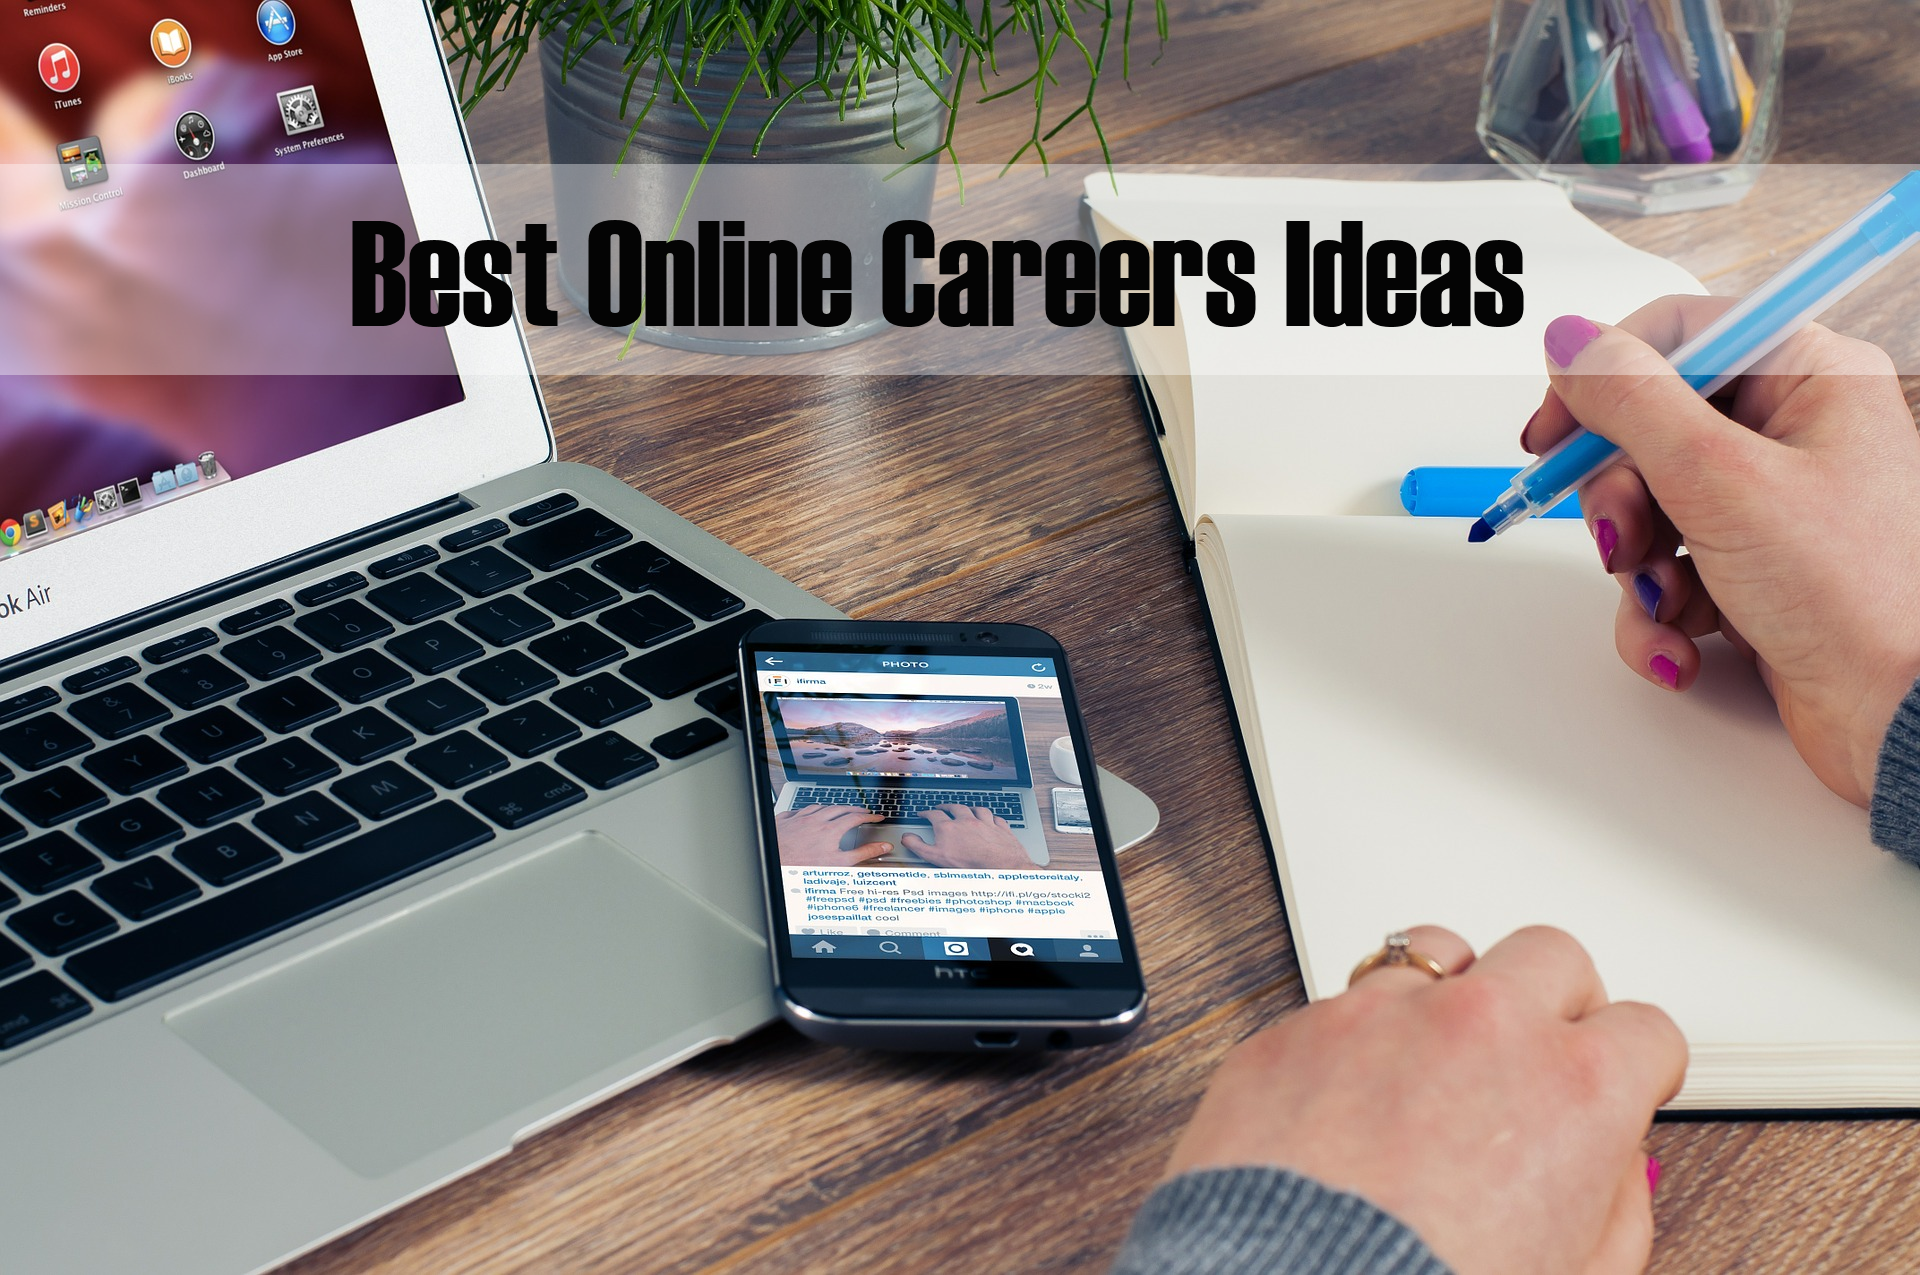 online career ideas